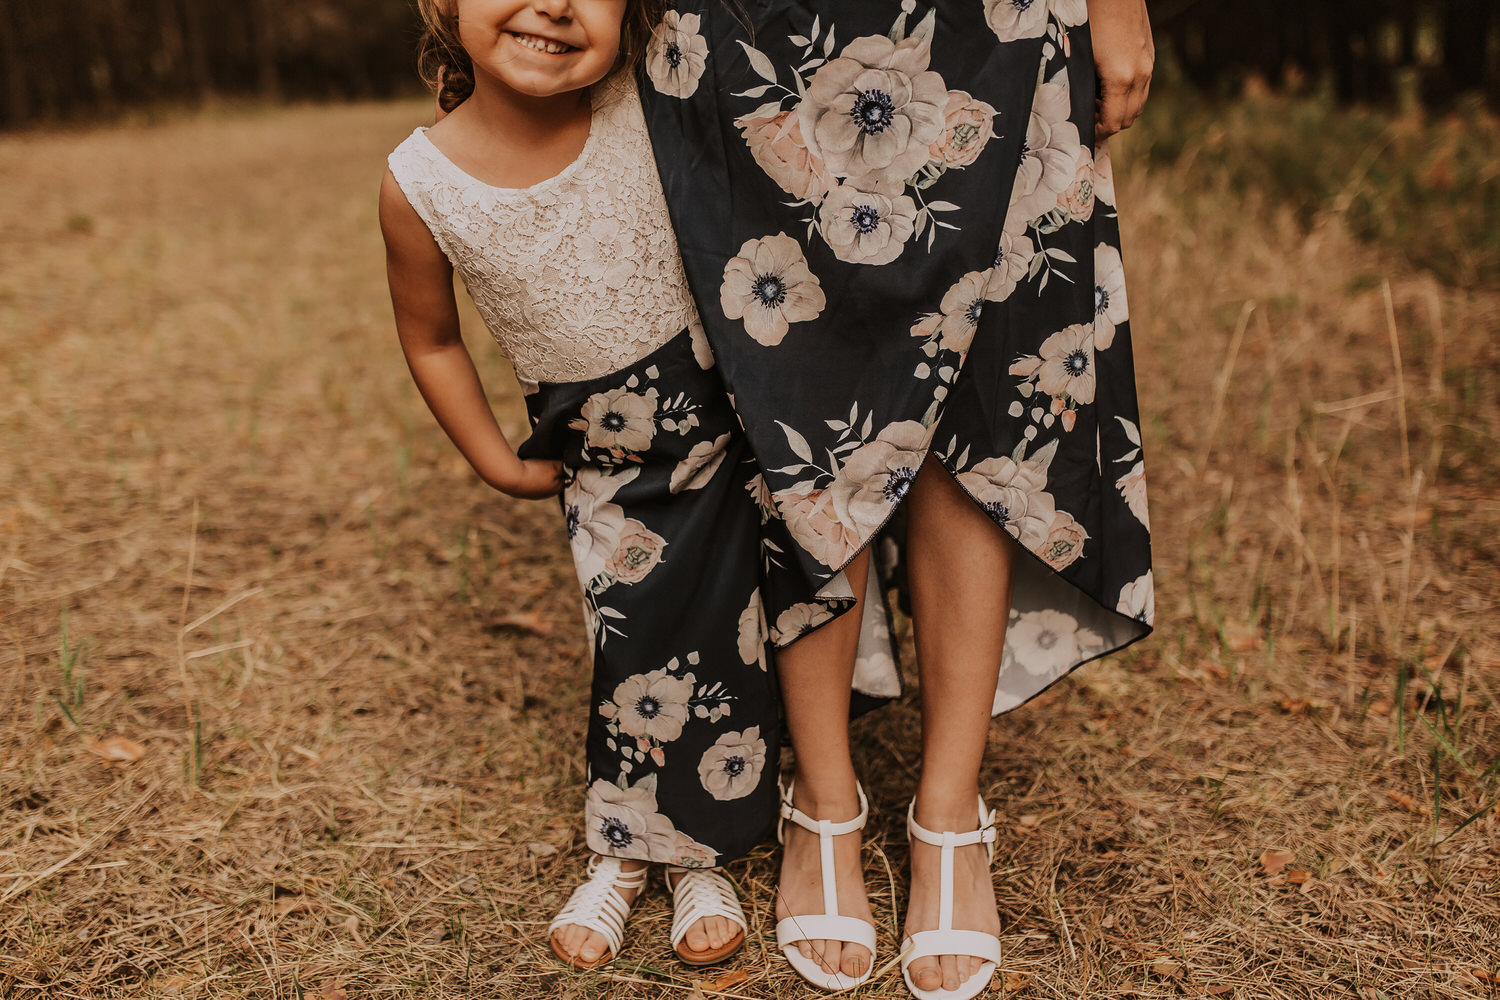 Chantal+Izzy_FamilySession_14.jpg